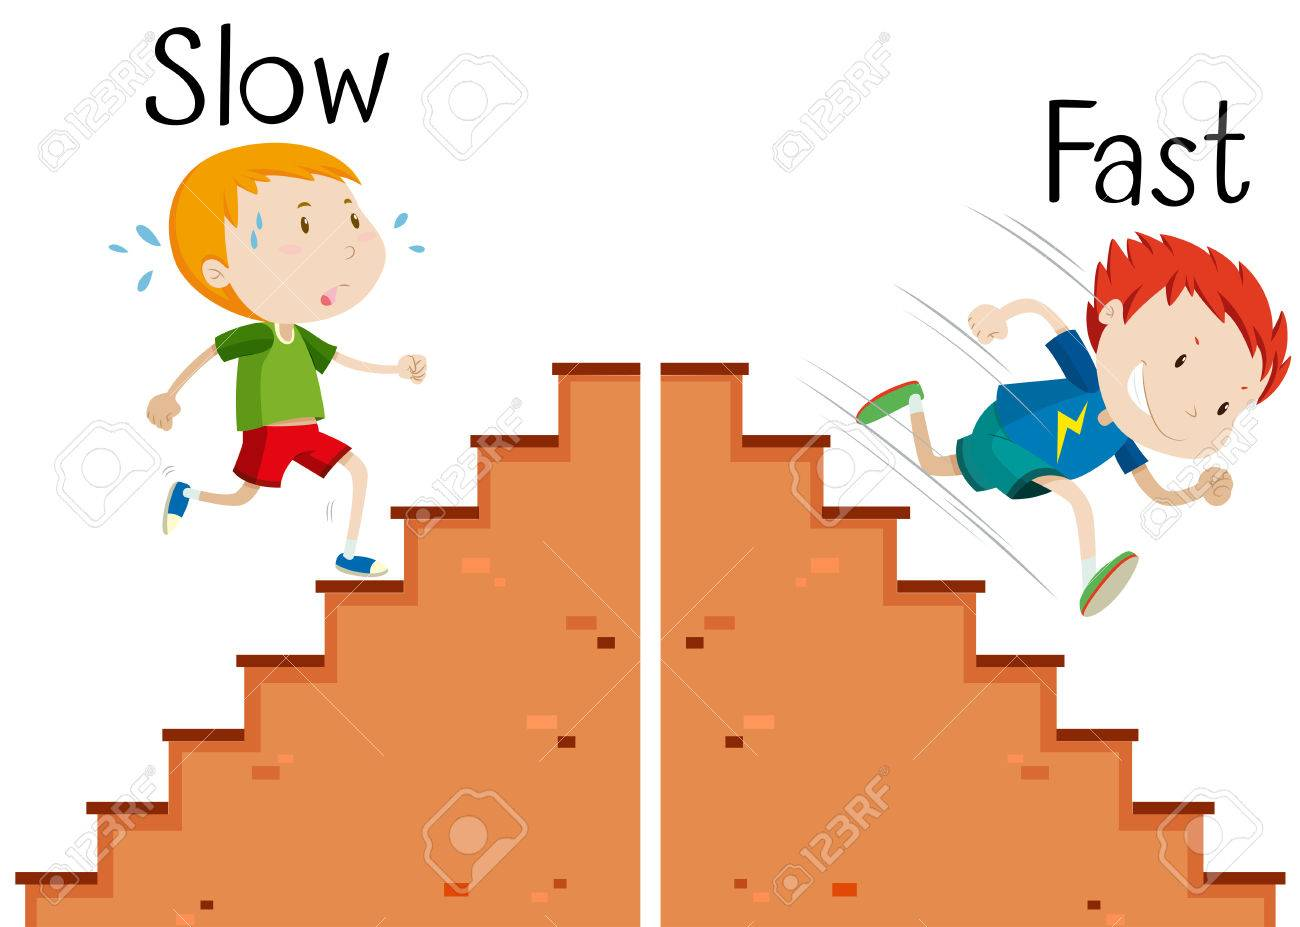 Opposite words slow and fast illustration.